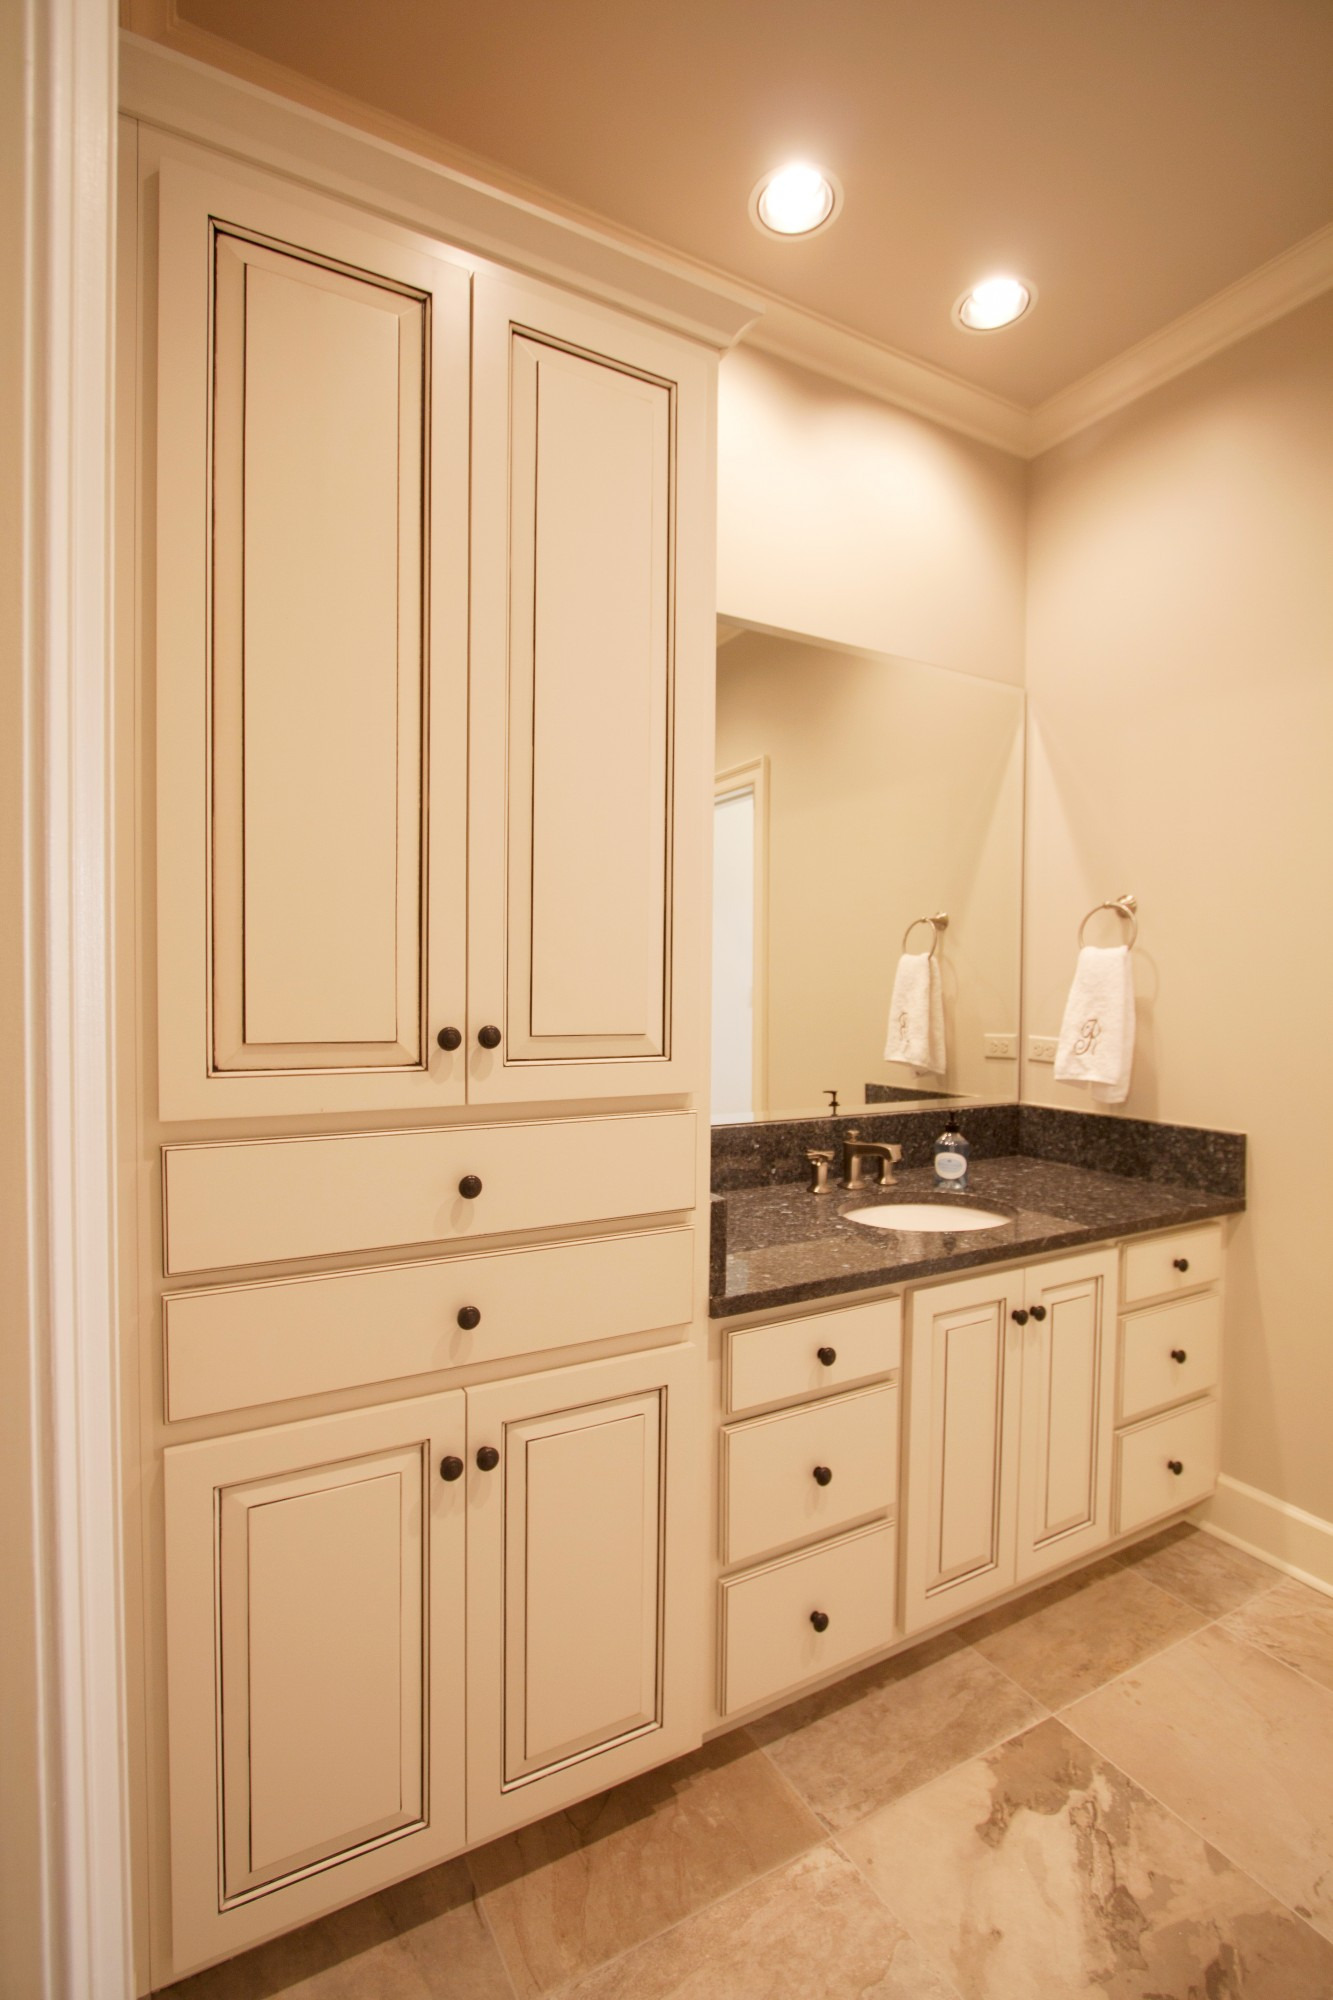 Replacement Bathroom Cabinet Doors and Drawer Fronts New Modern Bathroom Cabinet Door Fronts Innovative Design Ideasa